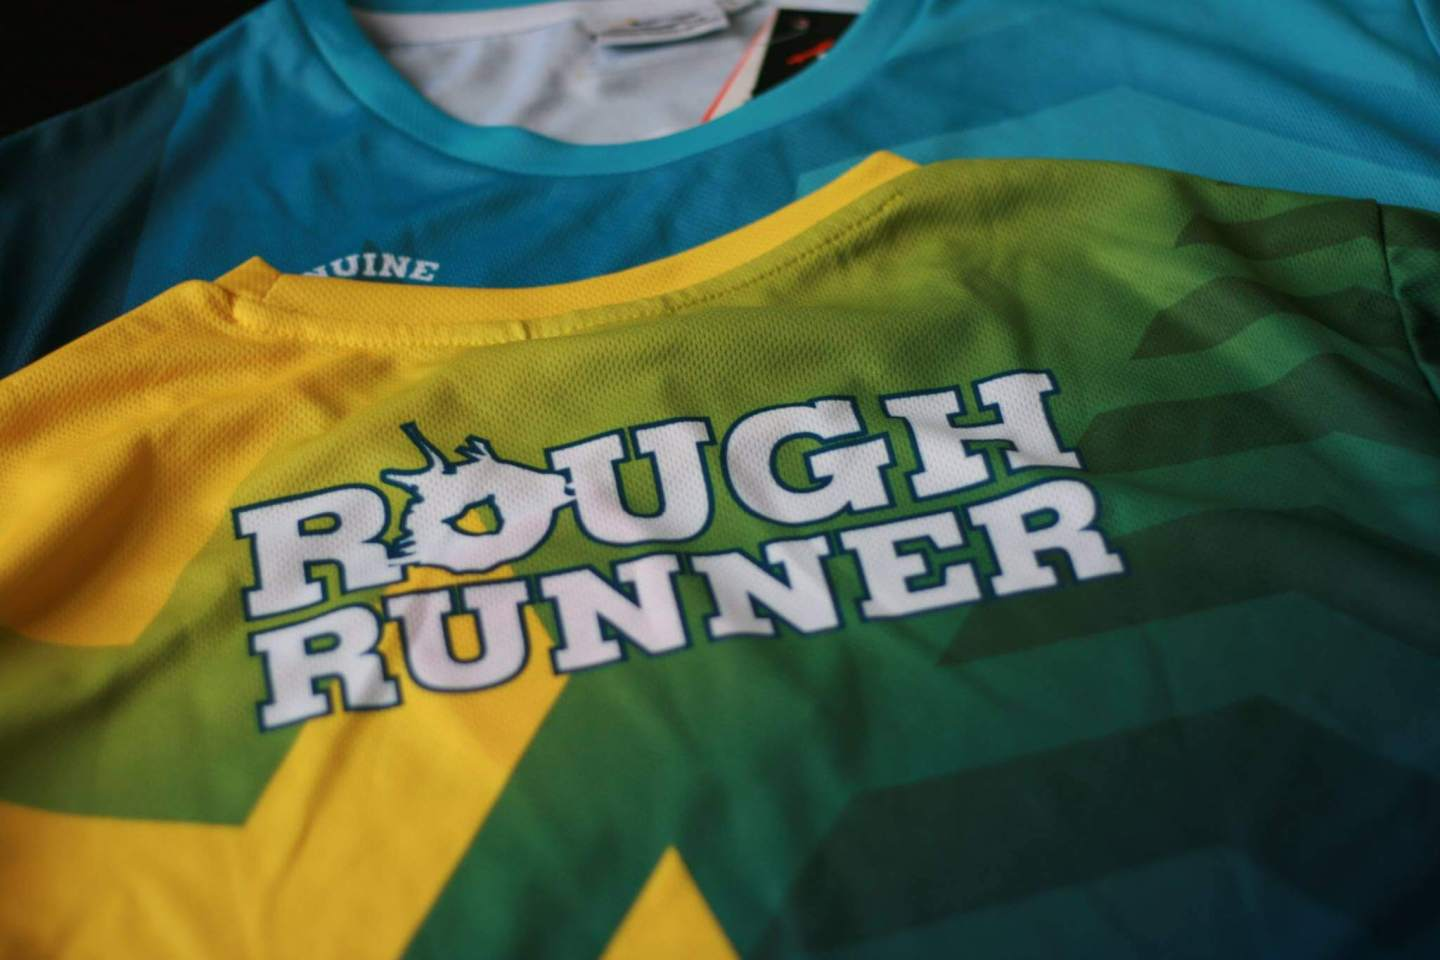 The Rough Runner Obstacle Course Run